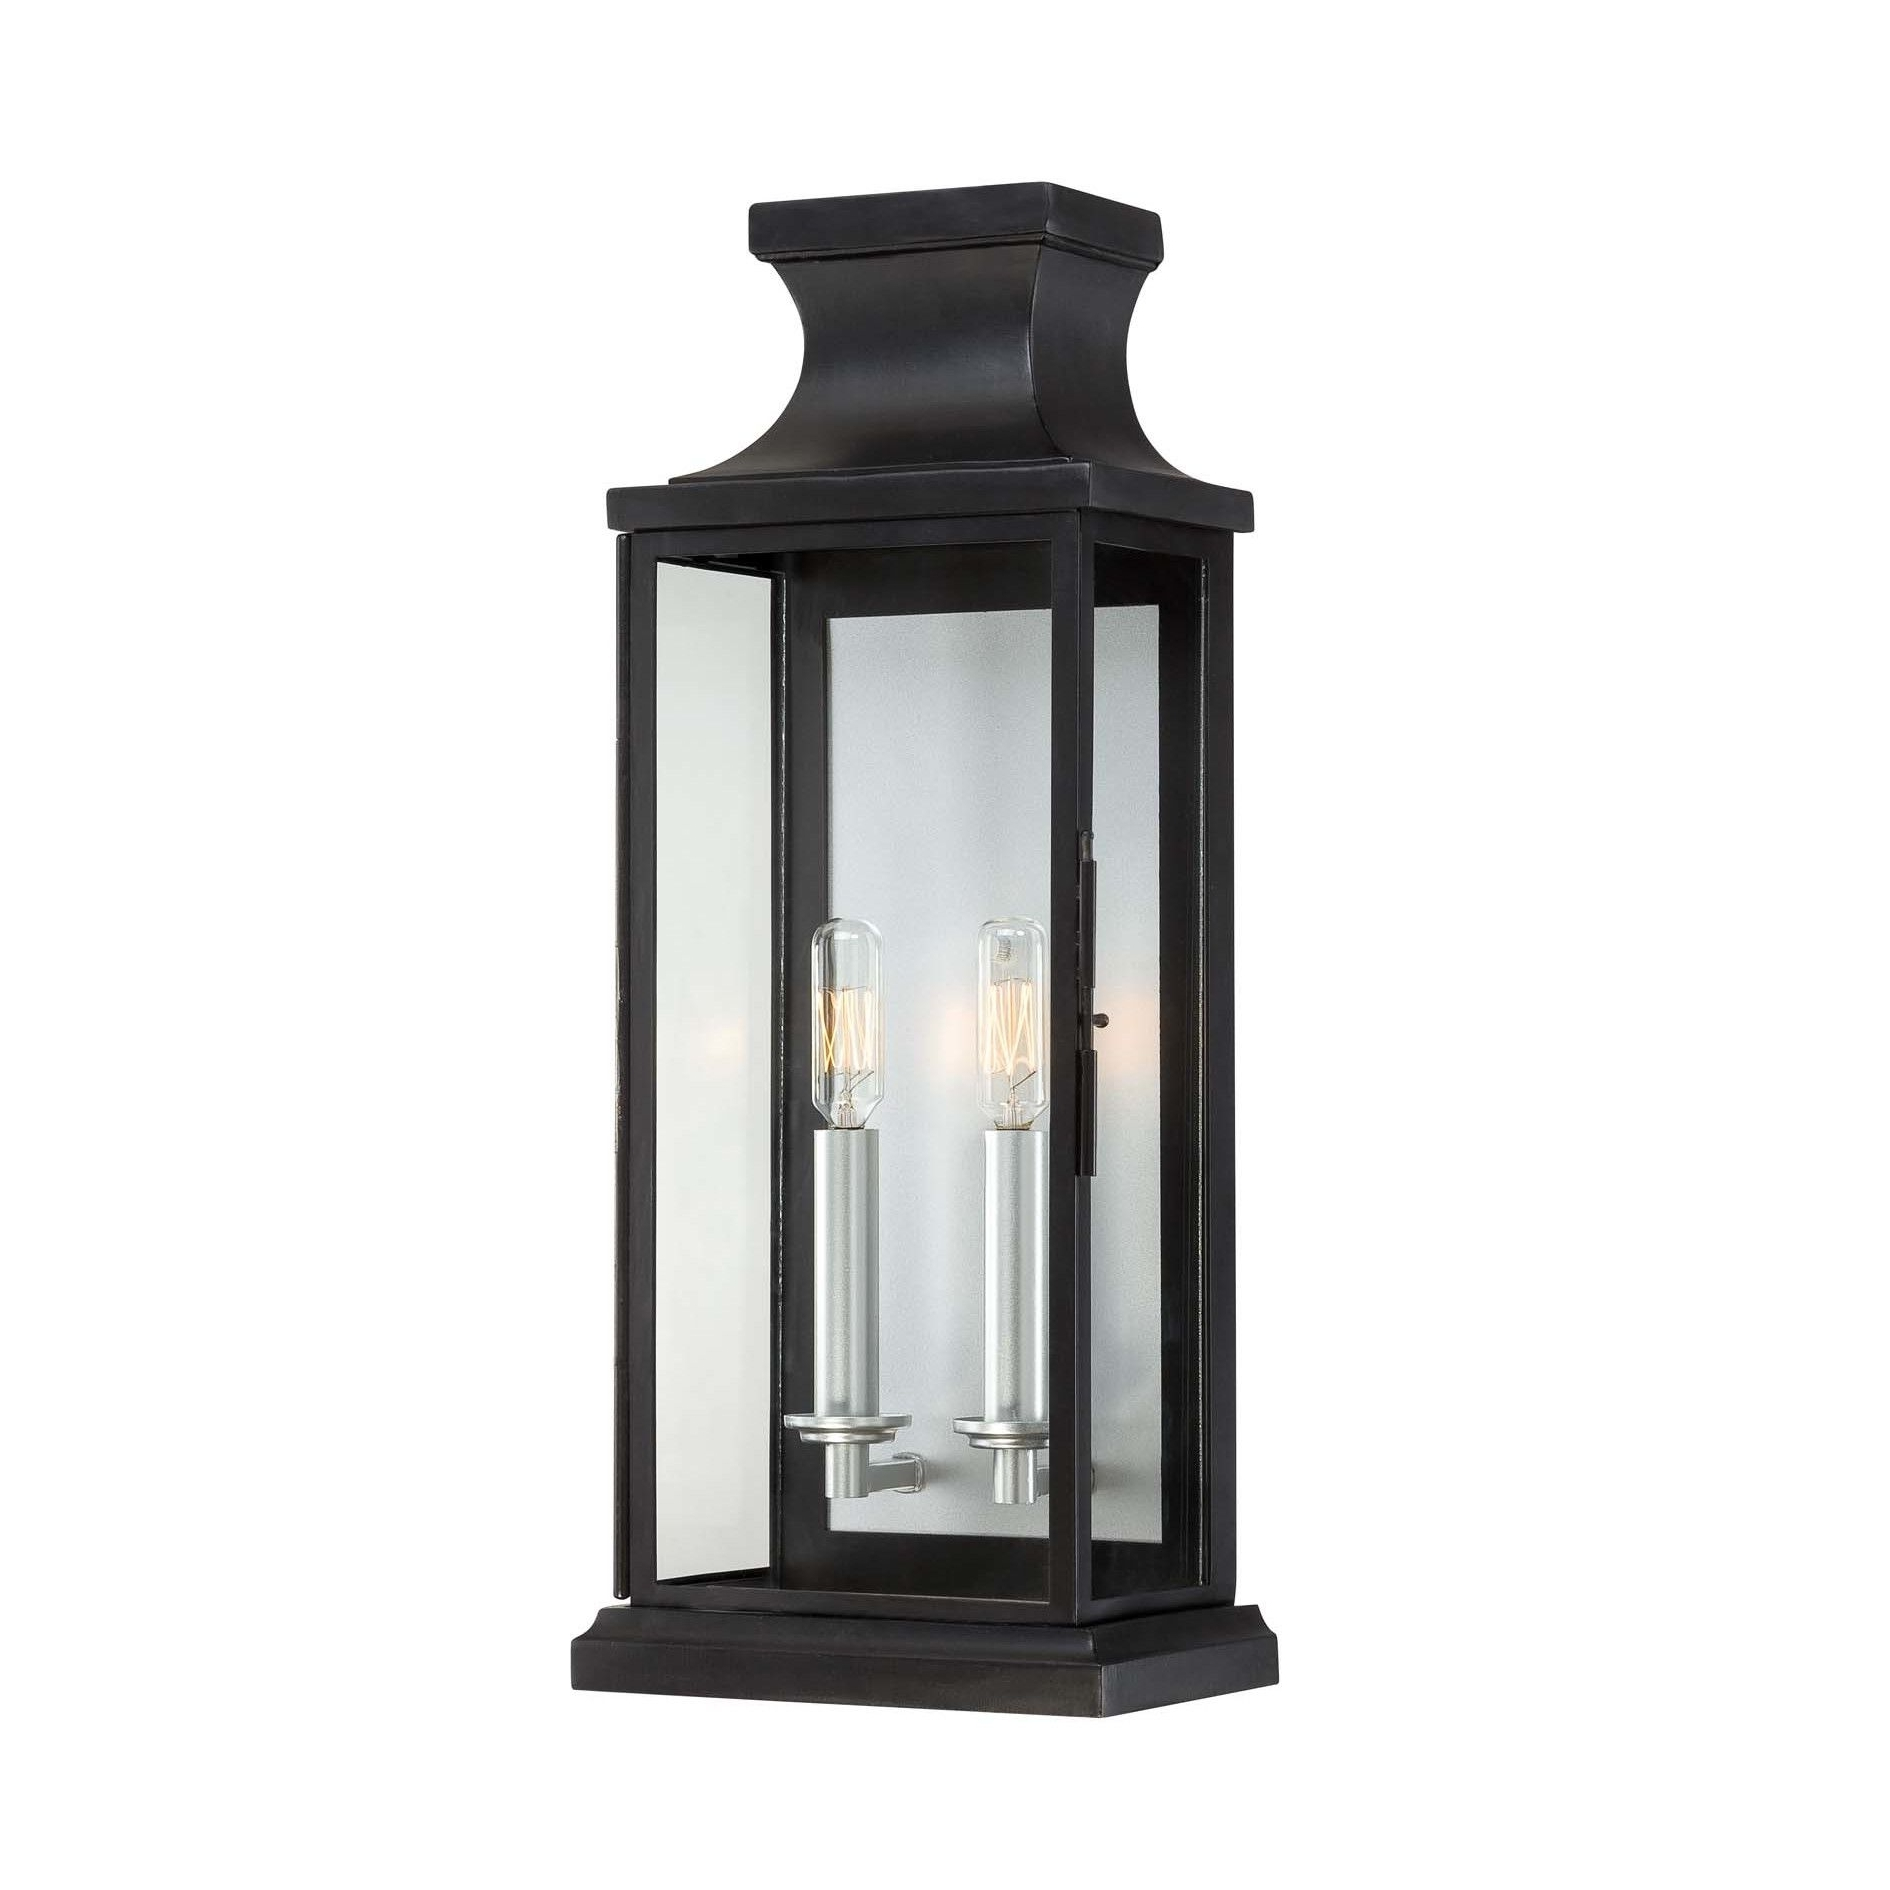 Big Outdoor Wall Lighting Regarding Trendy Shop Wayfair For Outdoor Wall Lighting To Match Every Style And (View 15 of 20)